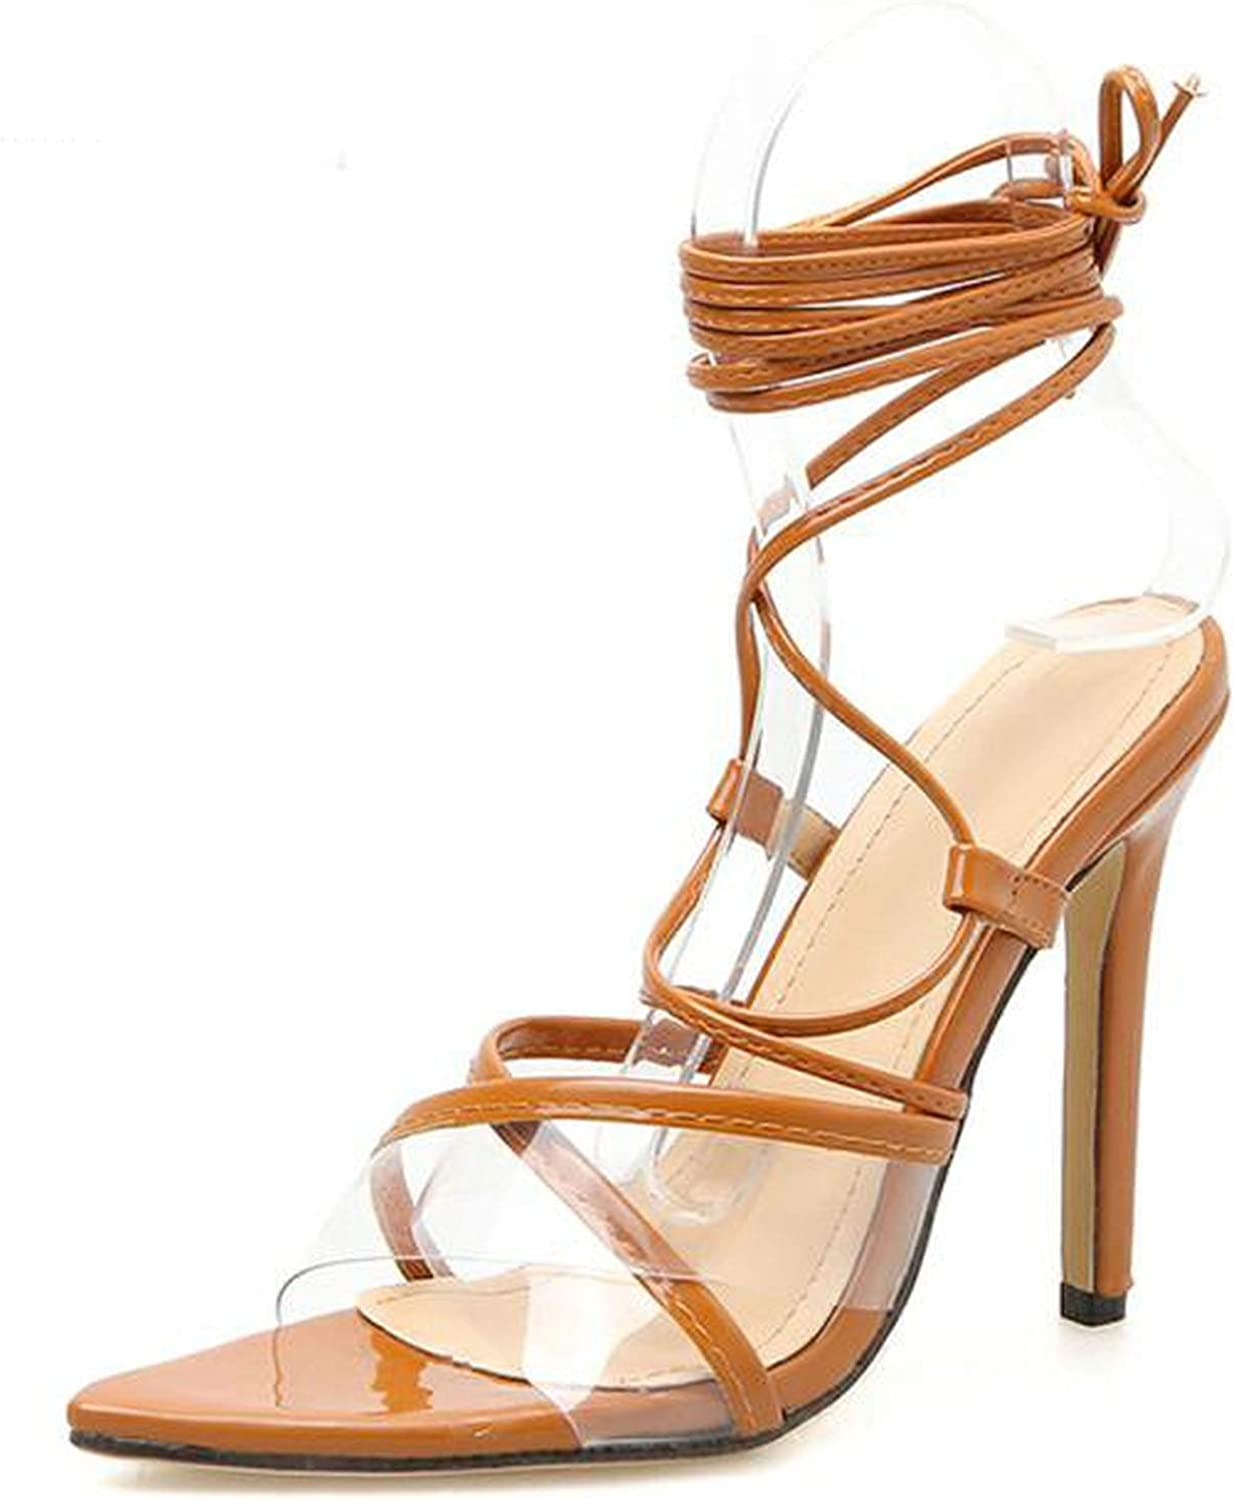 Sandals Lace-Up Transparent Ankle Strap Woman Sandals Thin High Heels,Brown,5